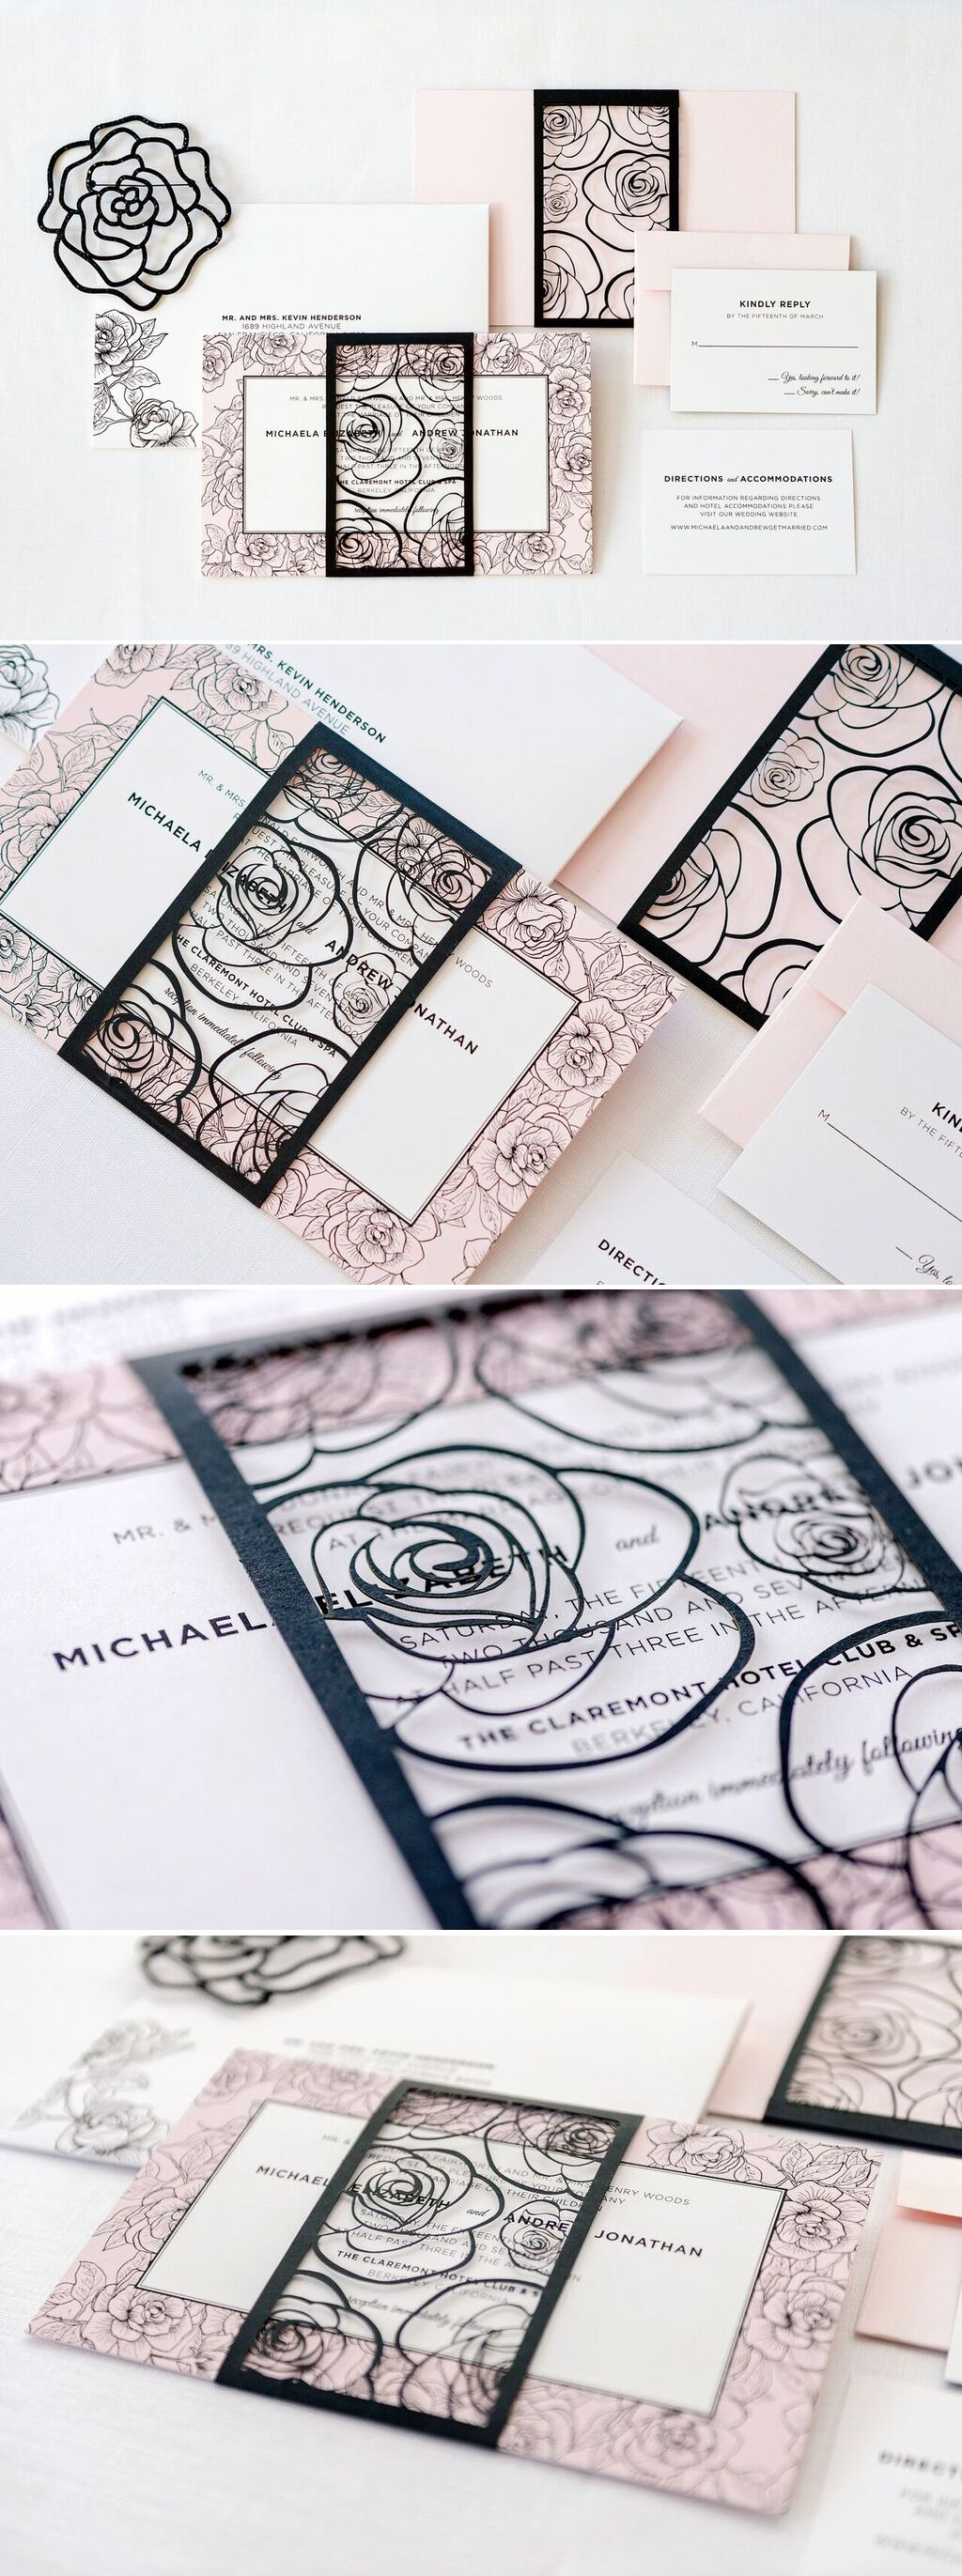 thought this may help inspire something | wedding invitations ...